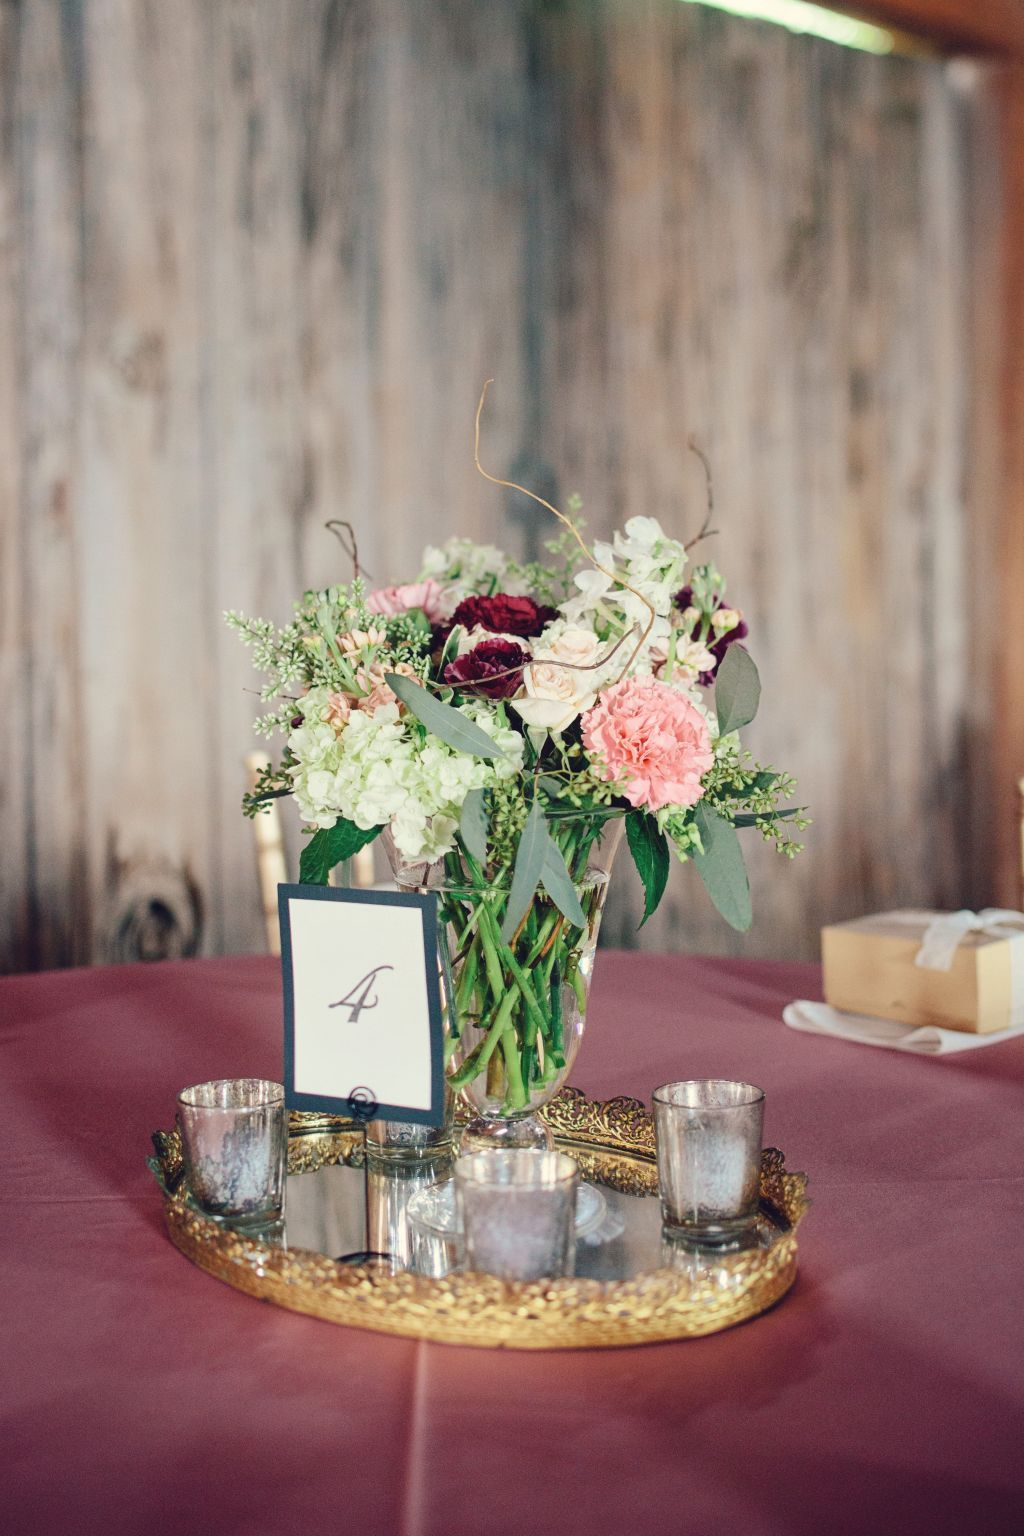 Tiger Lily Weddings I Like The Gold Tray And Candles In